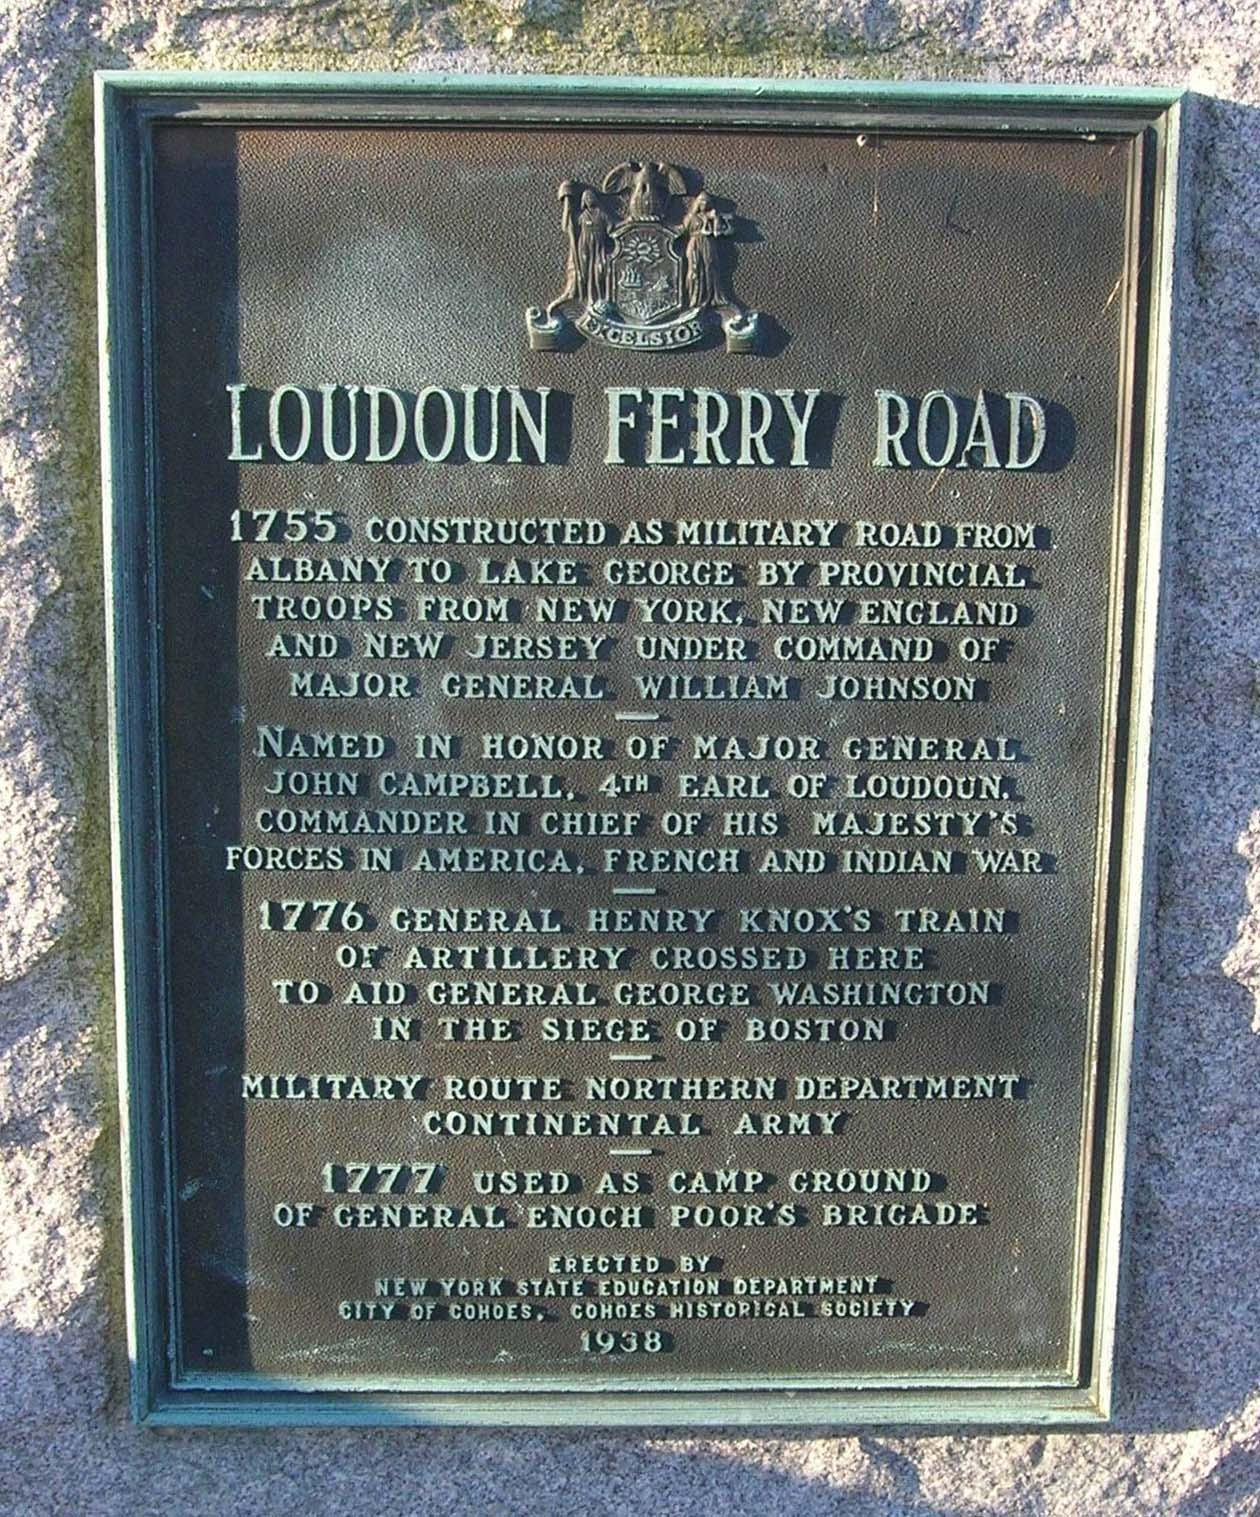 Loudoun Ferry Road Marker